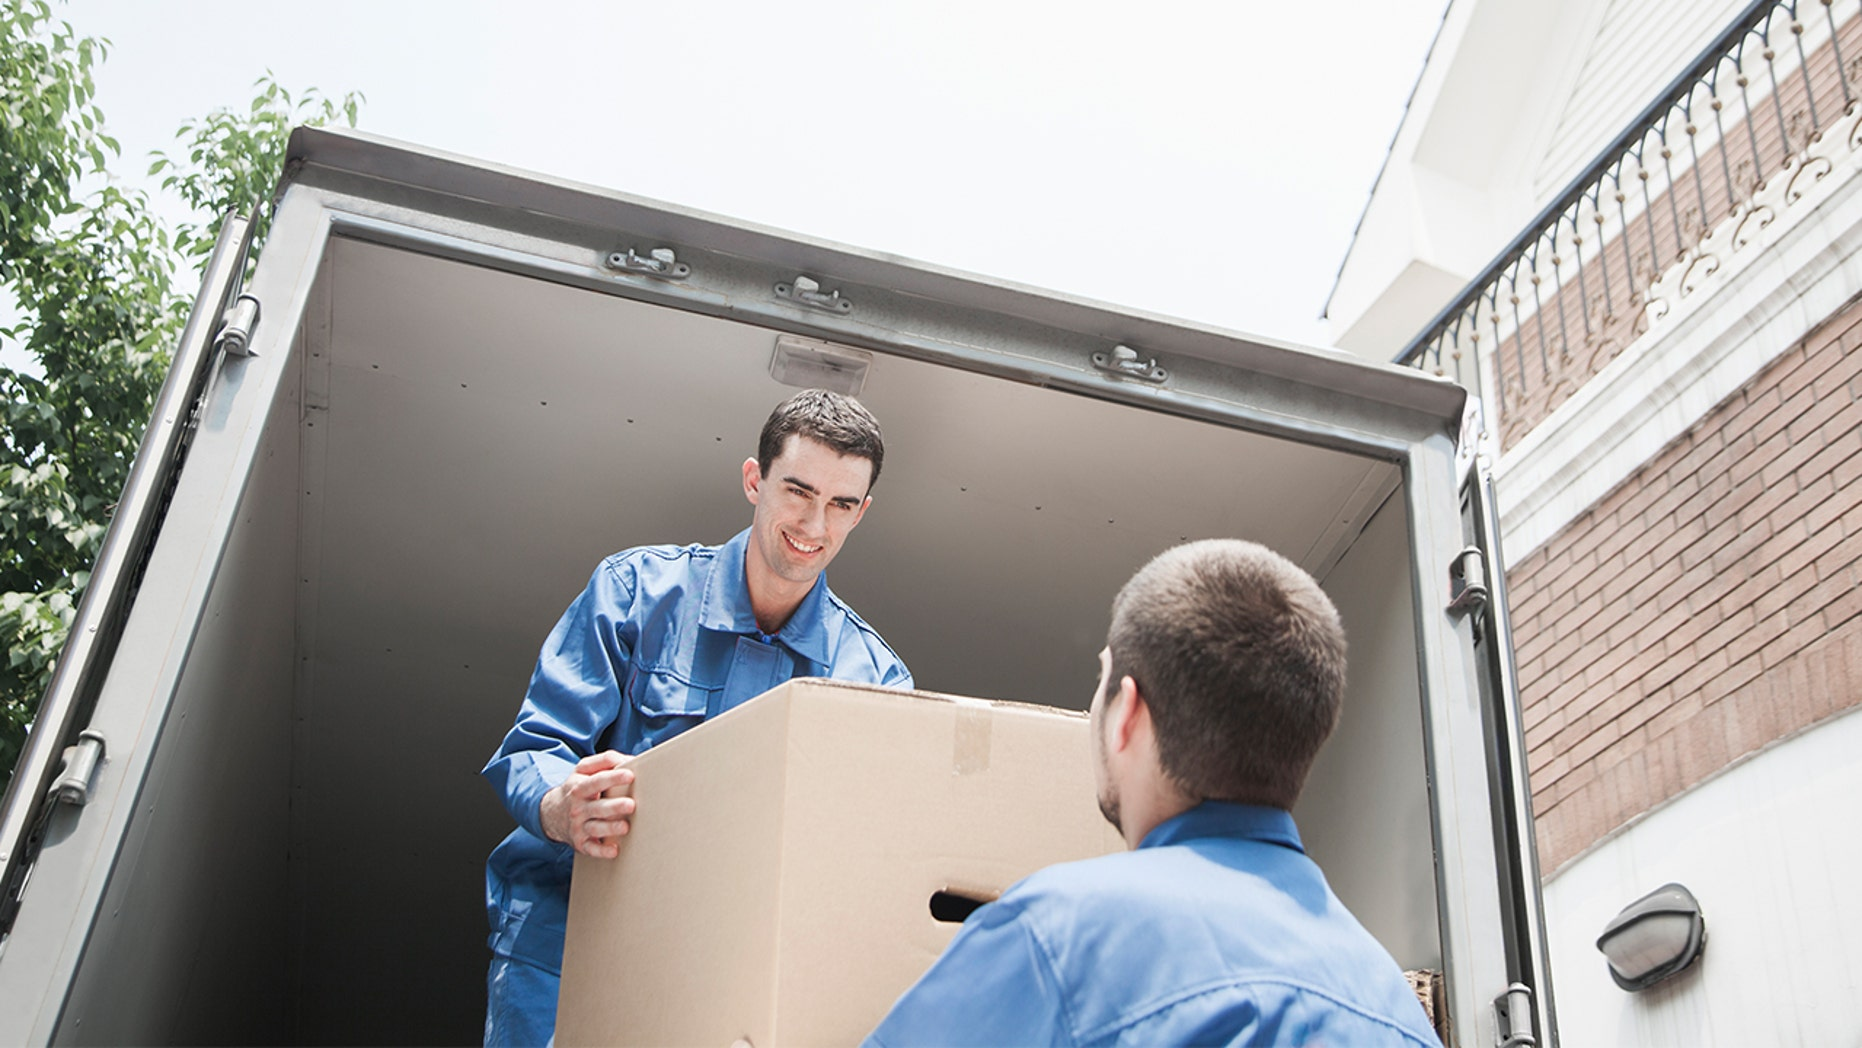 Preparing for a long distance move? Companies might be hesitant to ship these seven items.